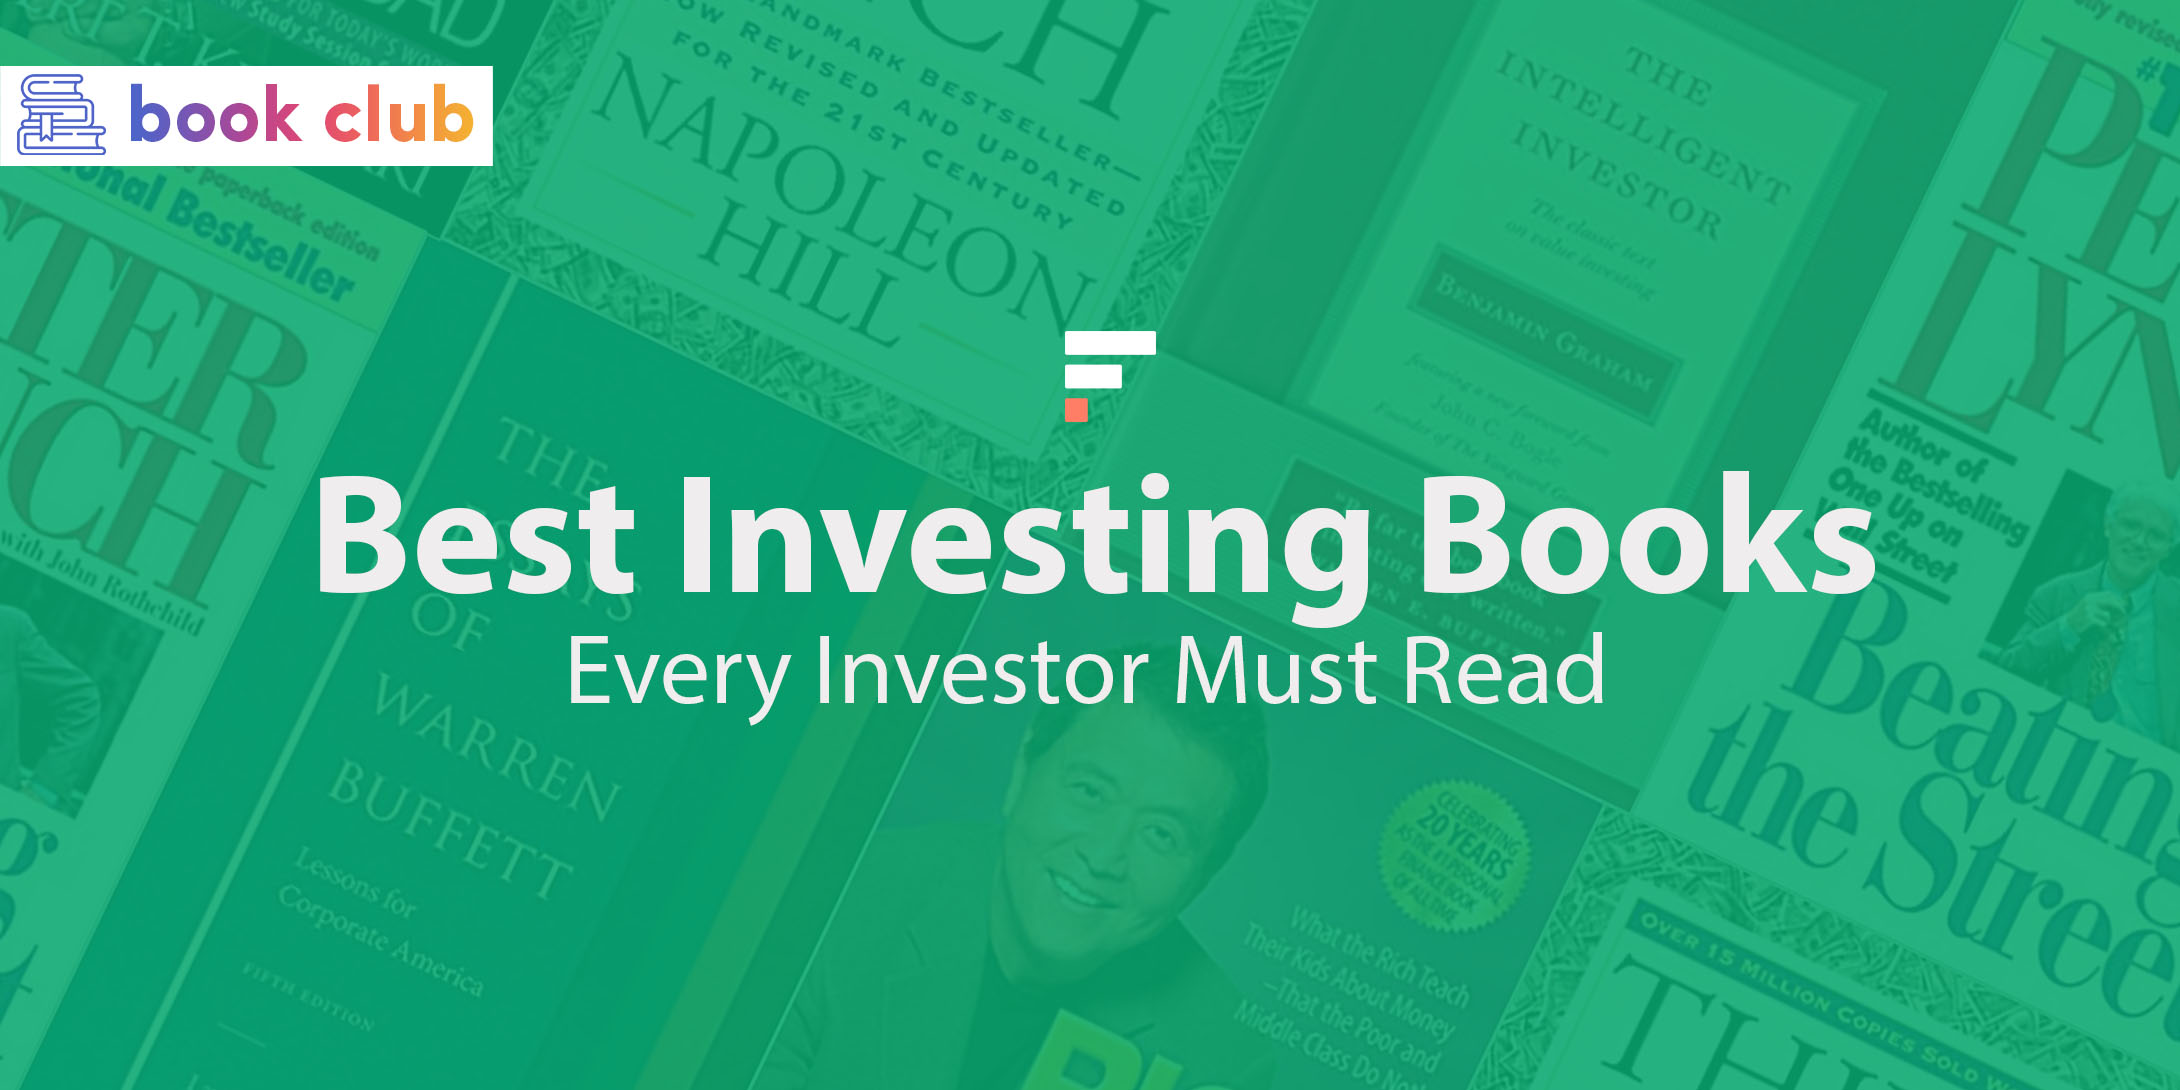 Best Investing Books Every Investor Must Read